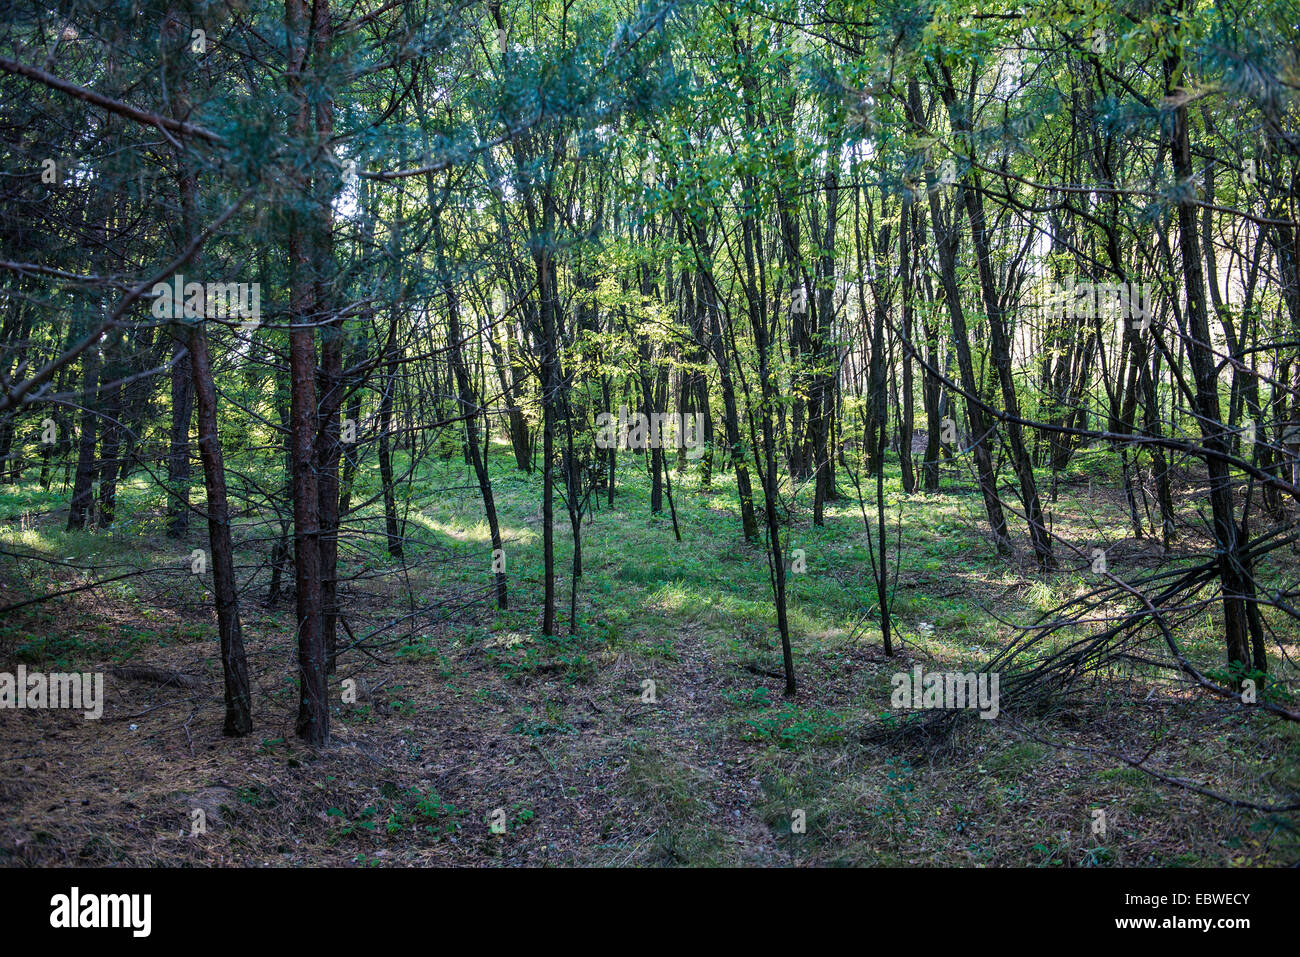 Forest in Chernobyl Exclusion Zone, Ukraine - Stock Image